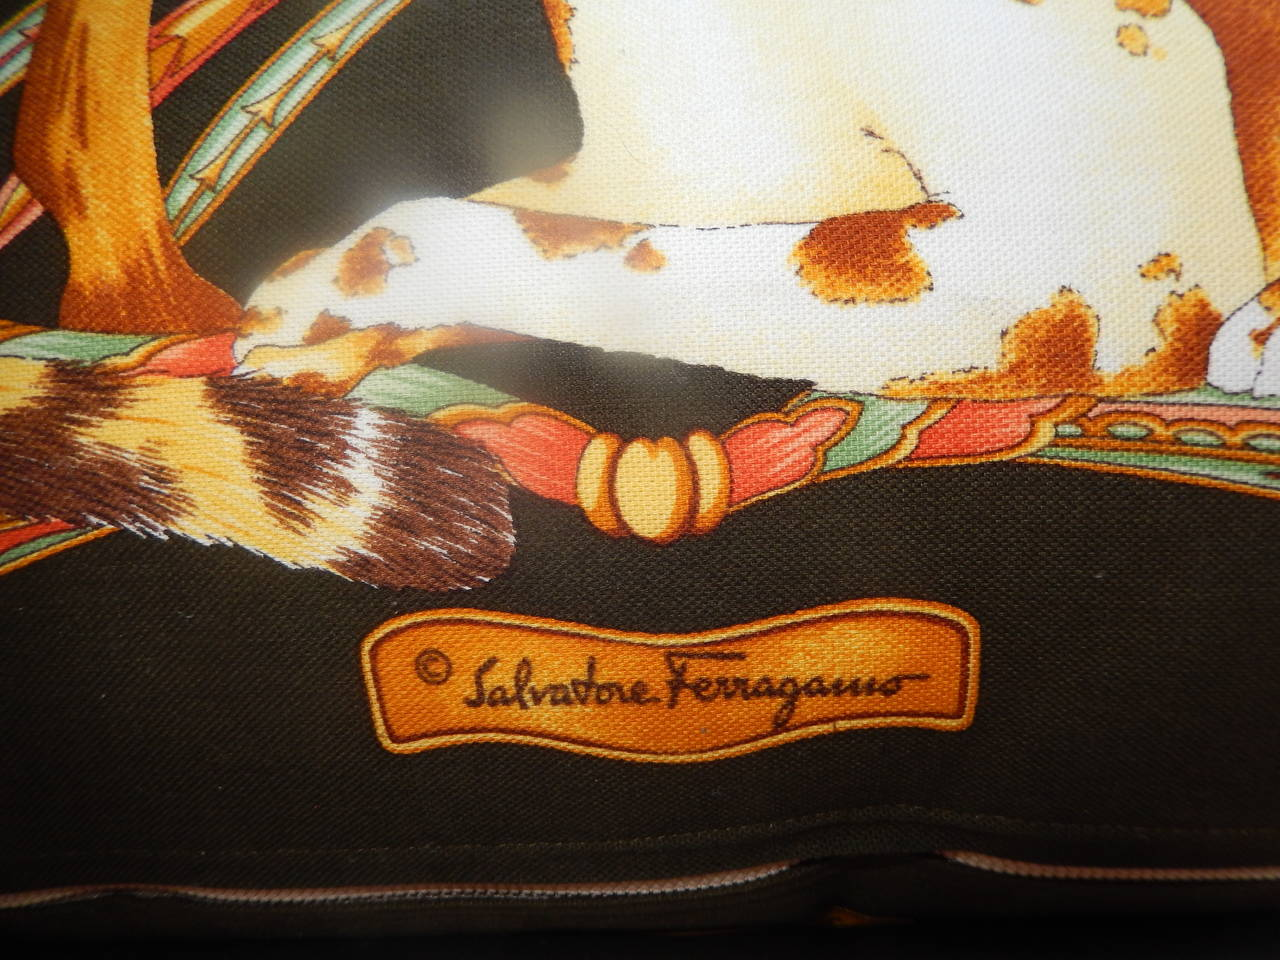 A vintage/Classic Salvatore Ferragamo large pillow, check out our other listings, as there are three pillows by Ferragamo.